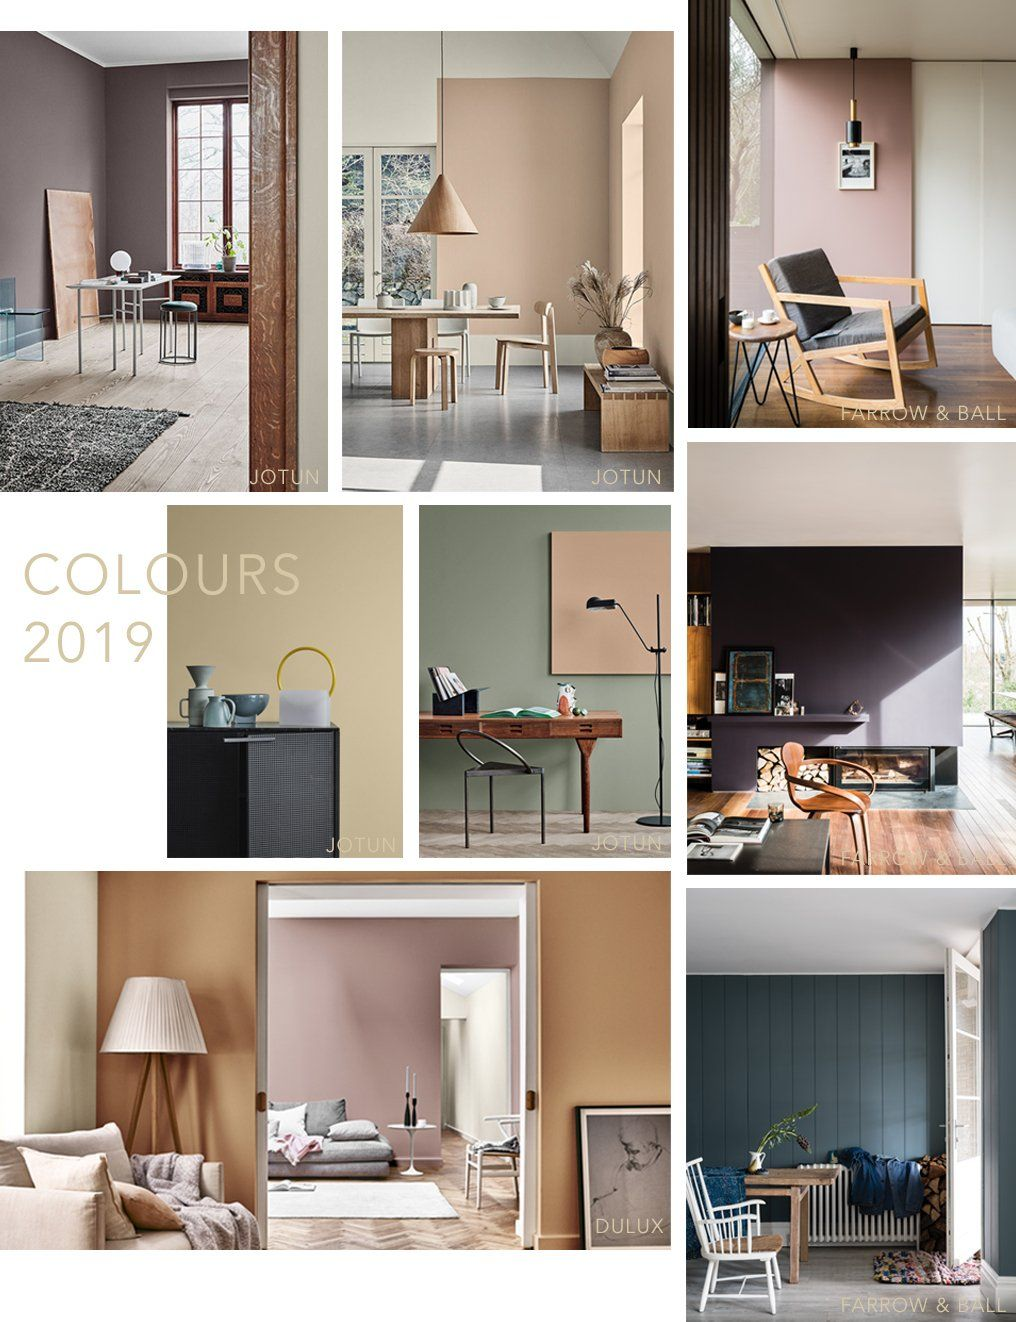 Interior Colour Trends 2019 #colourtrends #paintcolours #farrowandball  #Jotun #Dulux #modernliving